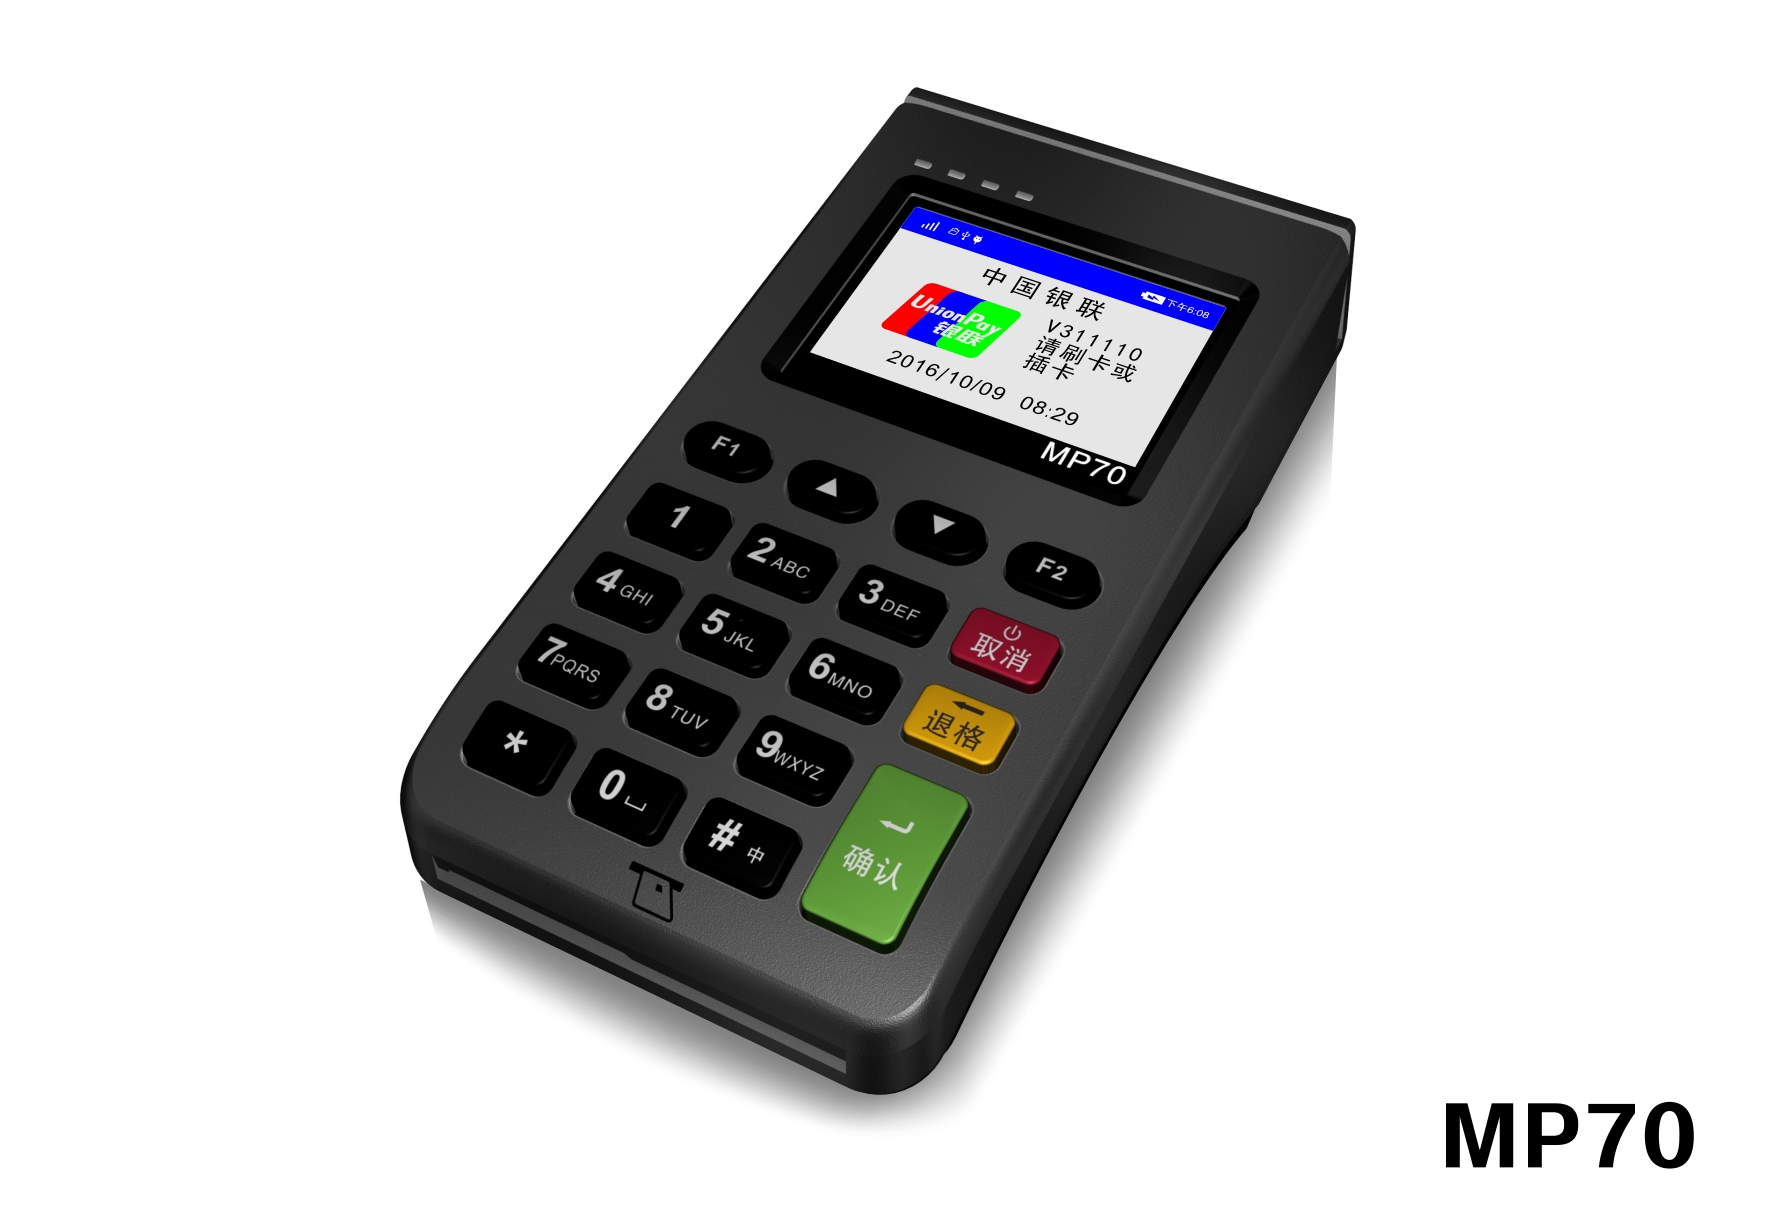 MP70 MINI Mobile Payment Terminal